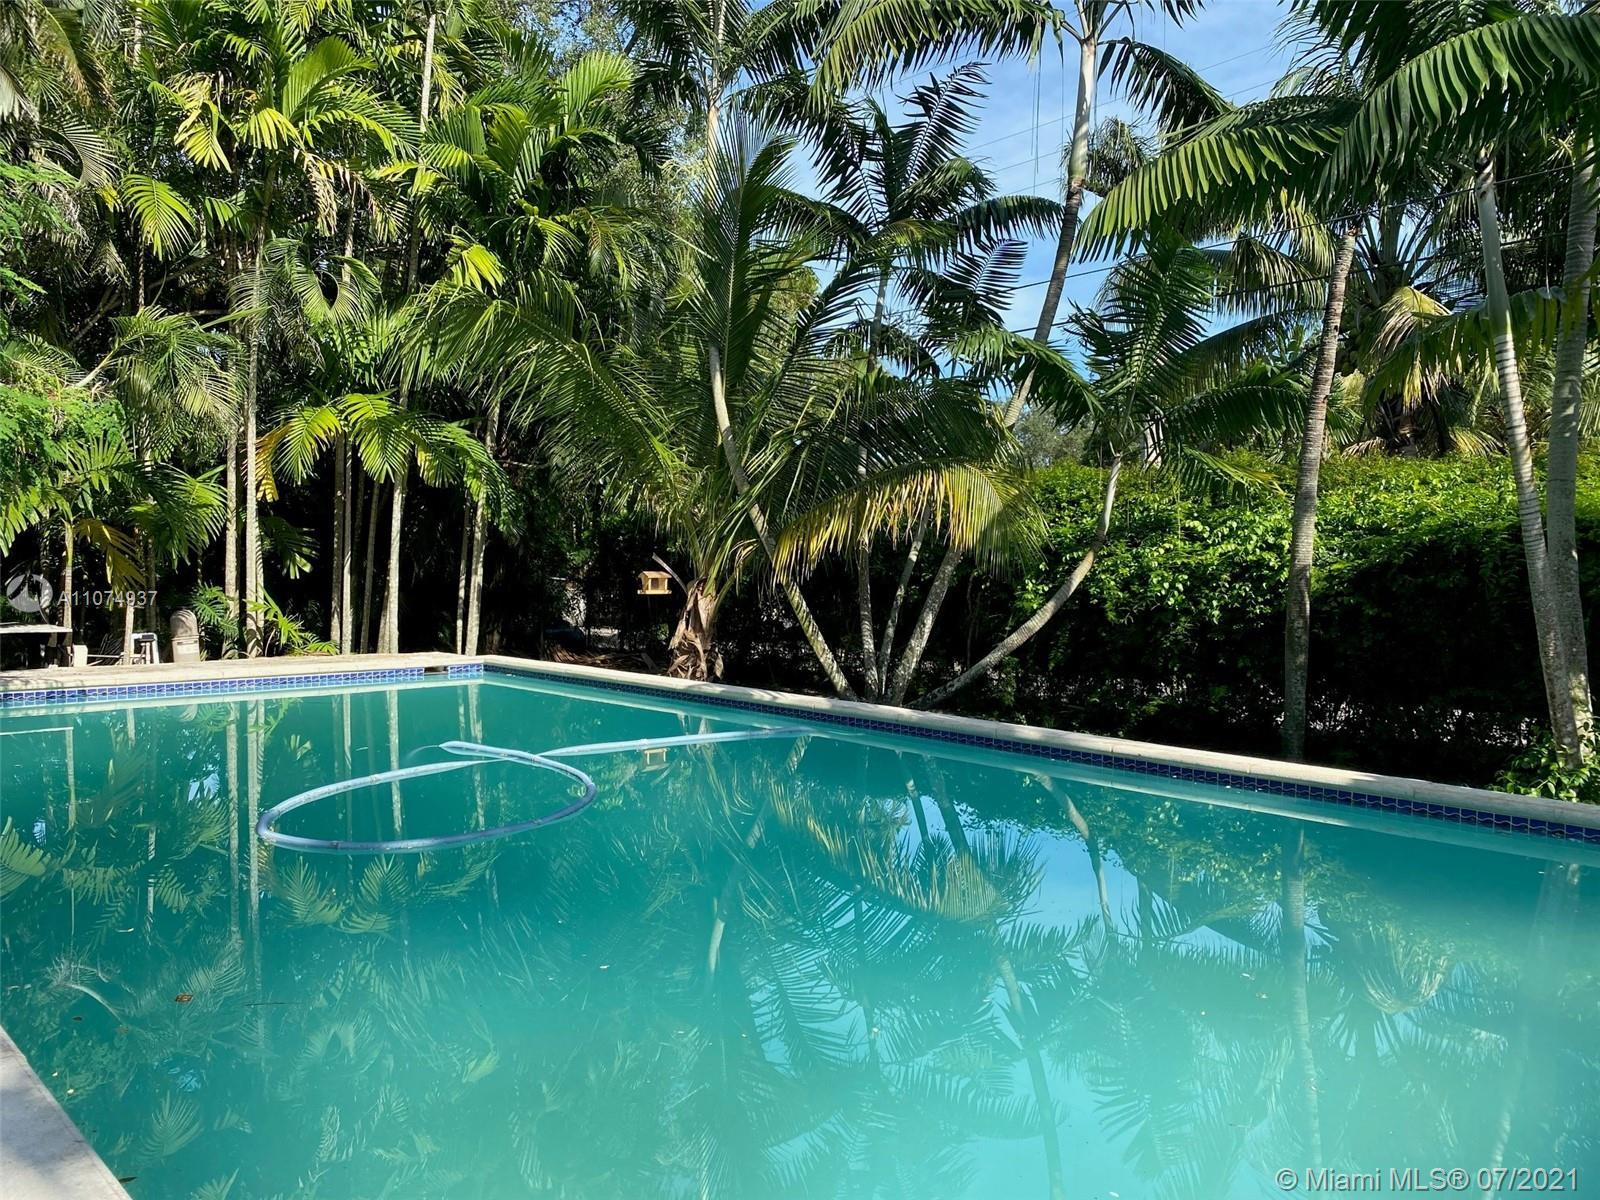 WOW! GRAB THIS BEAUTY and POLISH this GEM! POOL home in NE Miami Shores! True 3 bed & 2 baths PLUS g